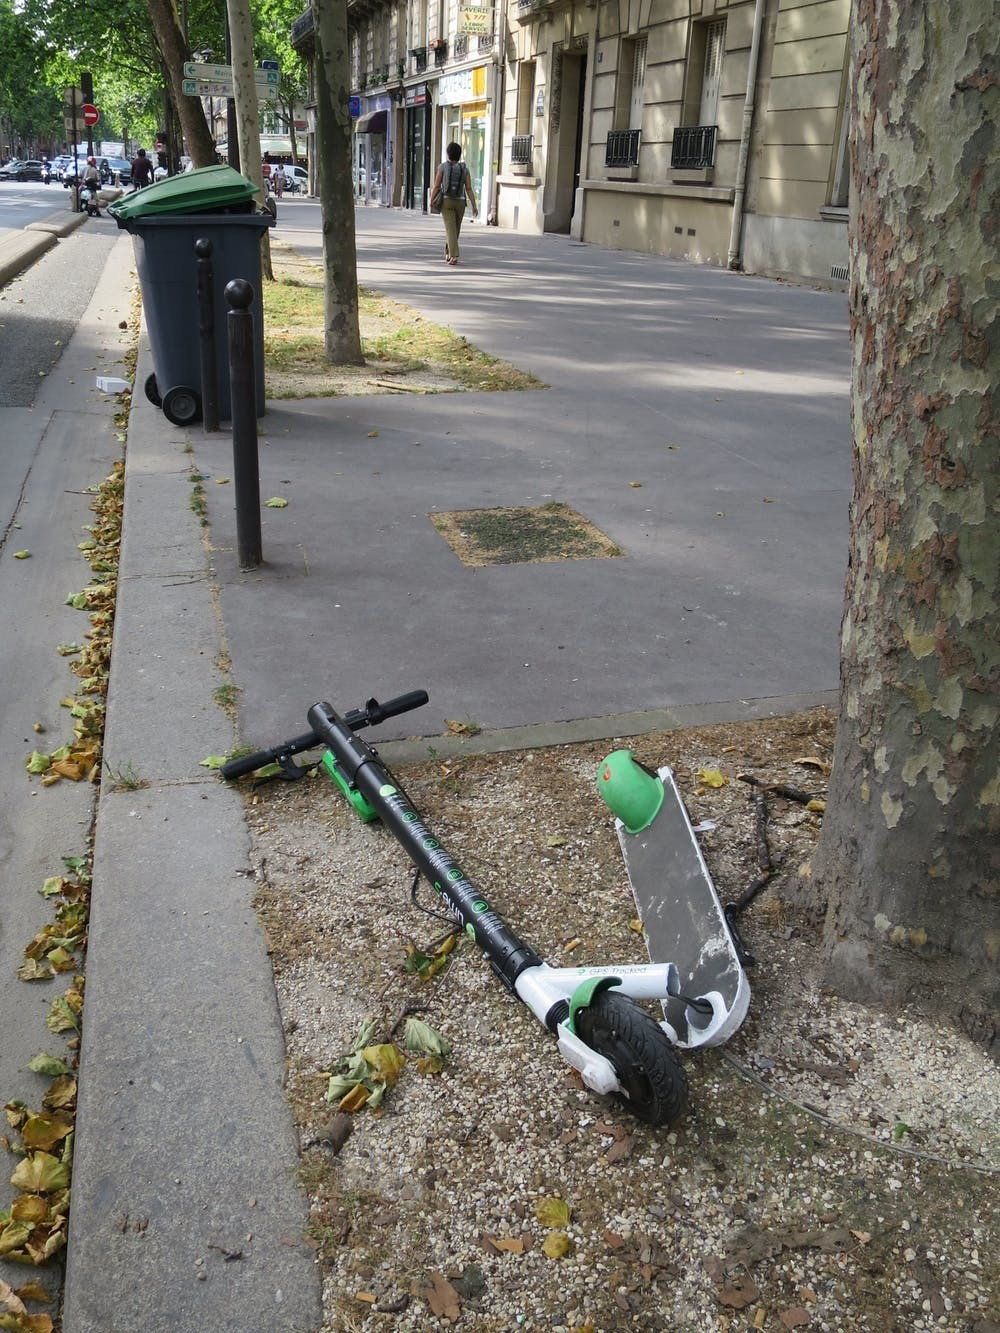 A snapped Lime lies abandoned in Paris. Attempting to speed their launch and minimise costs, e-mobility firms have often used off-the-shelf scooters that die quickly on city streets.